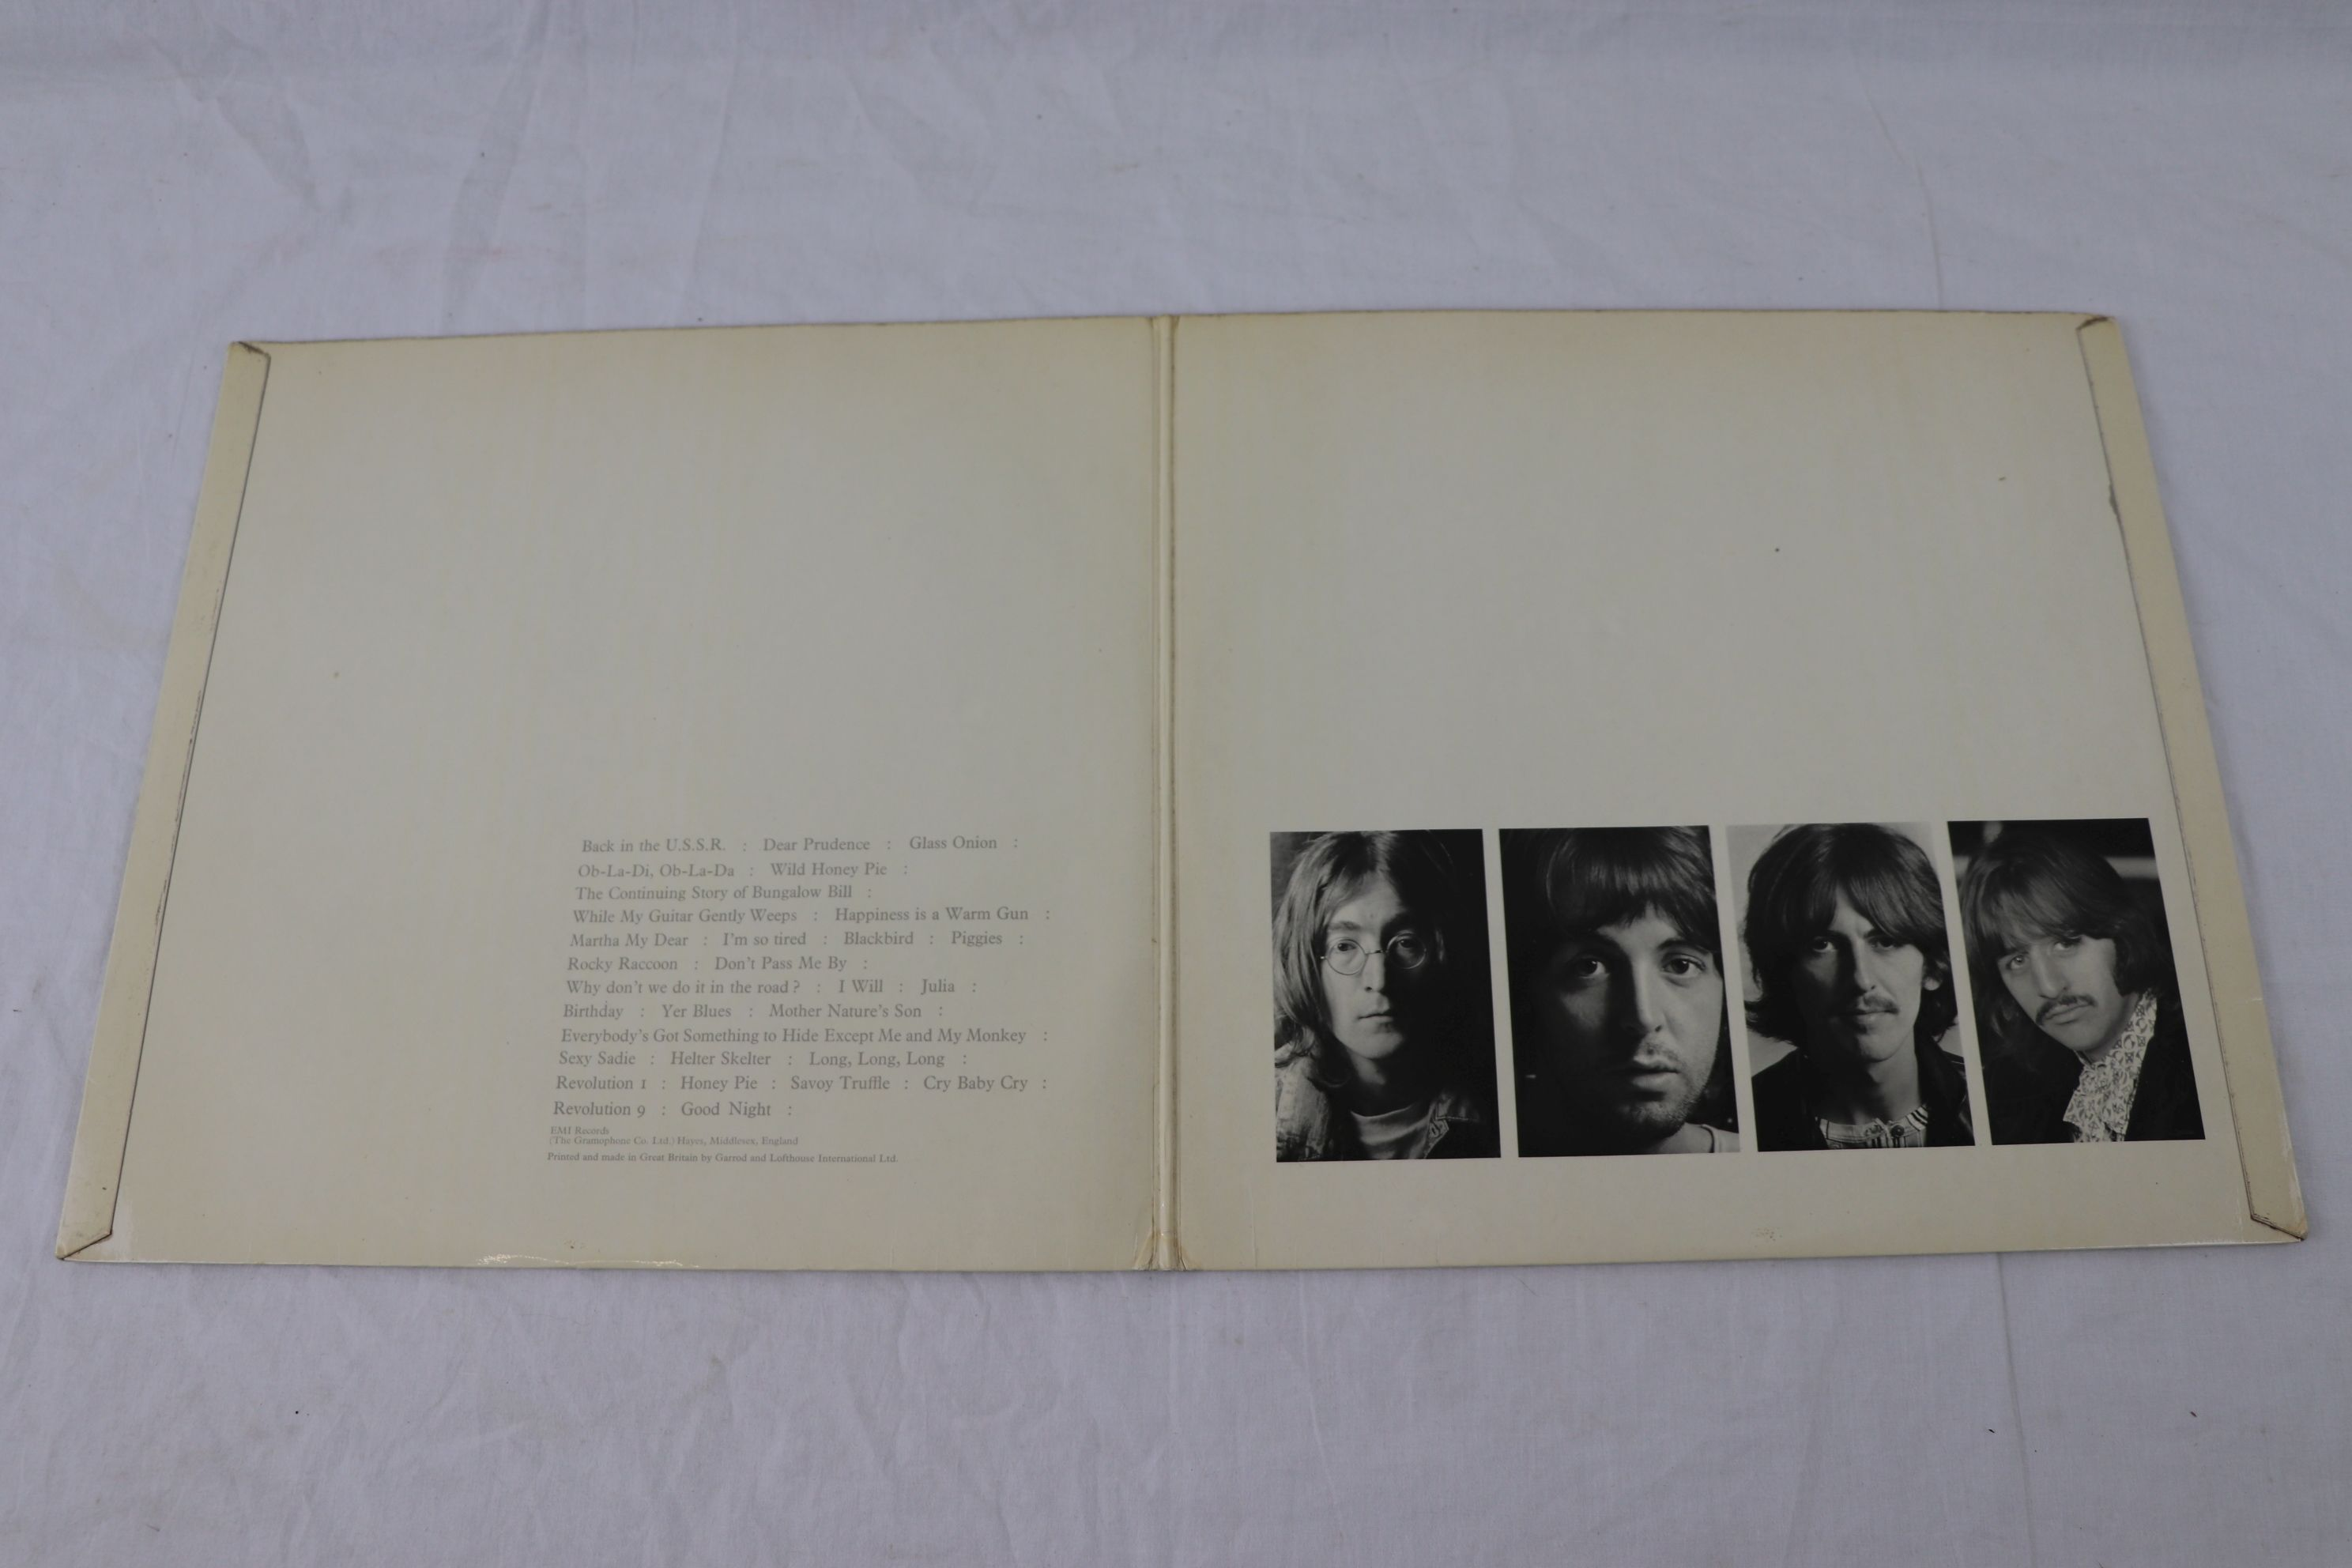 Lot 2 - Vinyl - The Beatles - White Album (Apple PCS 7067/68) number 0000432 - This a rare low-numbered